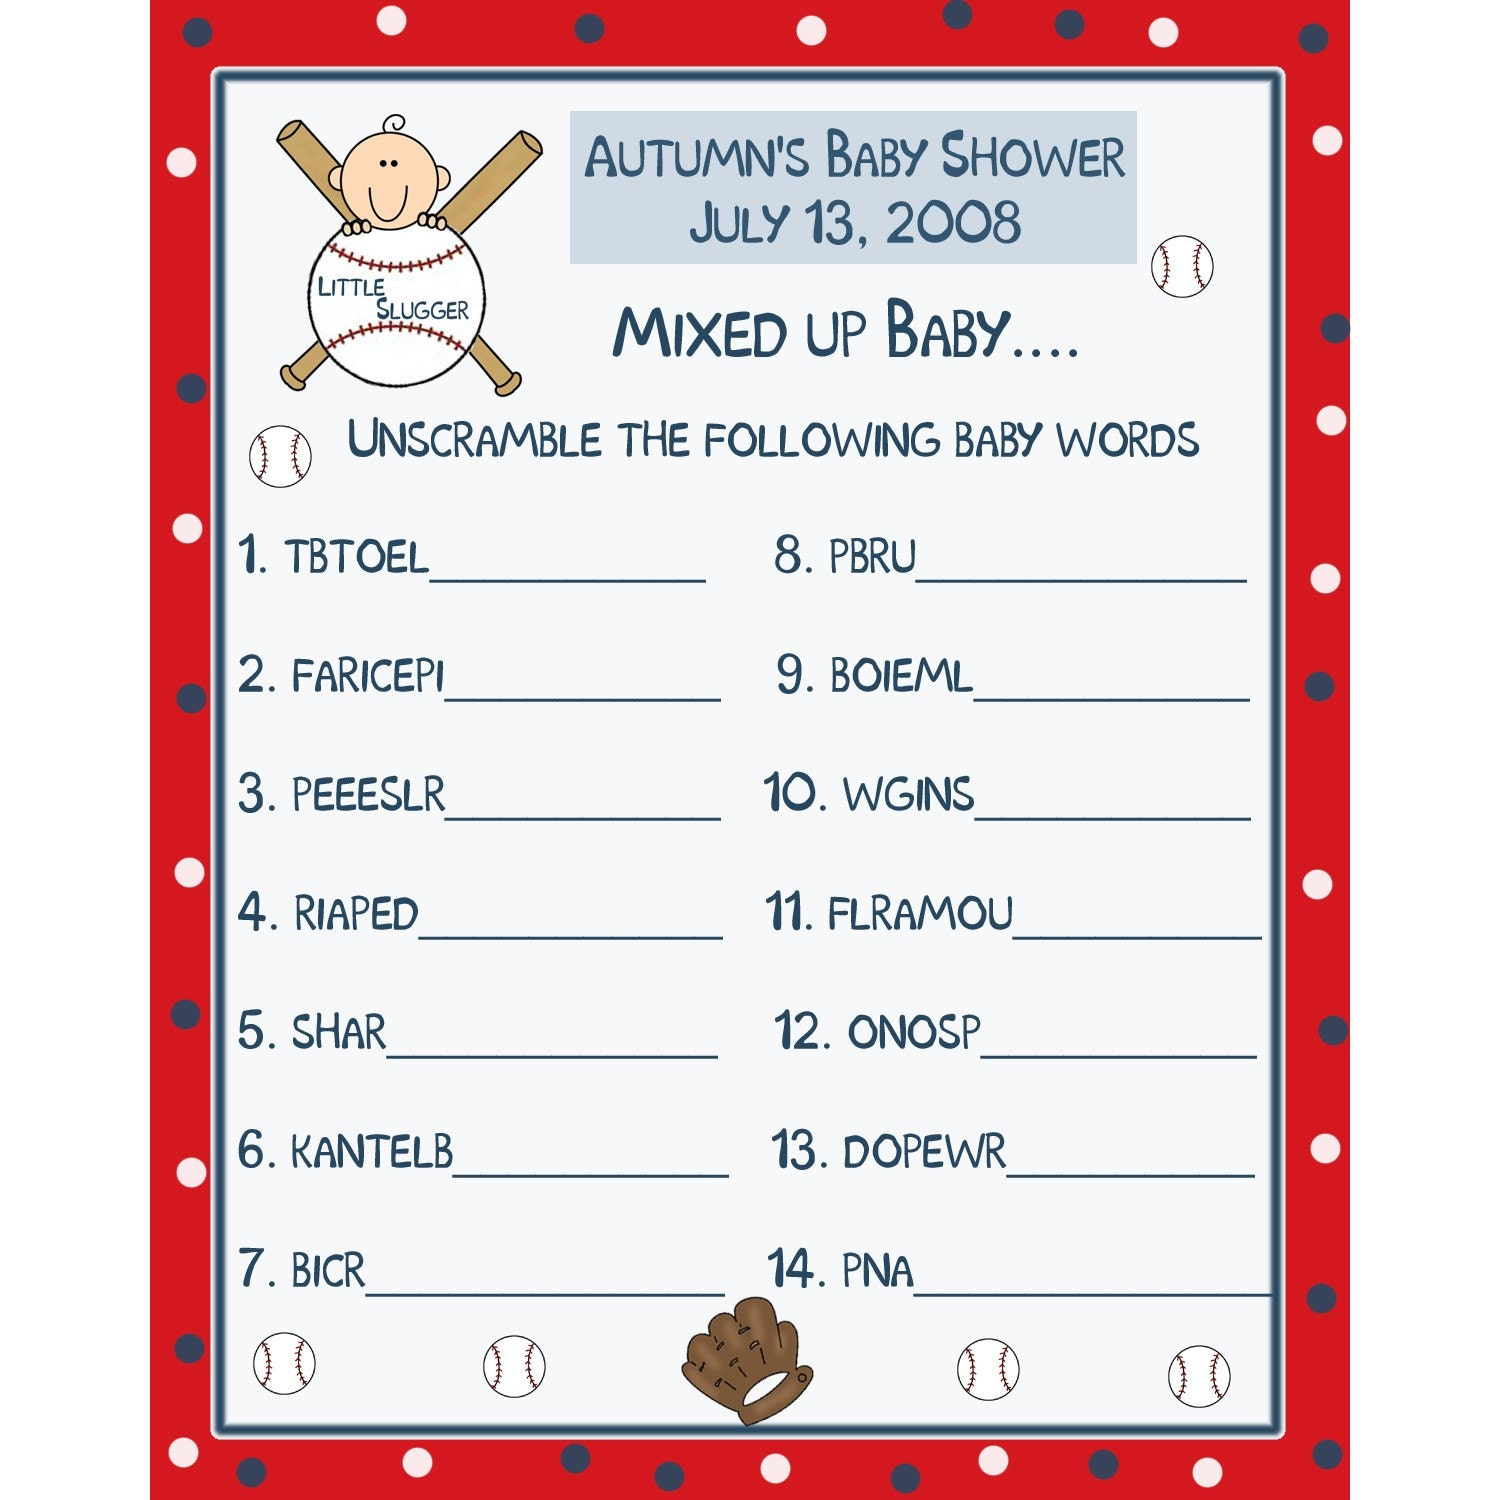 24 personalized baby shower word scramble game cards by partyplace